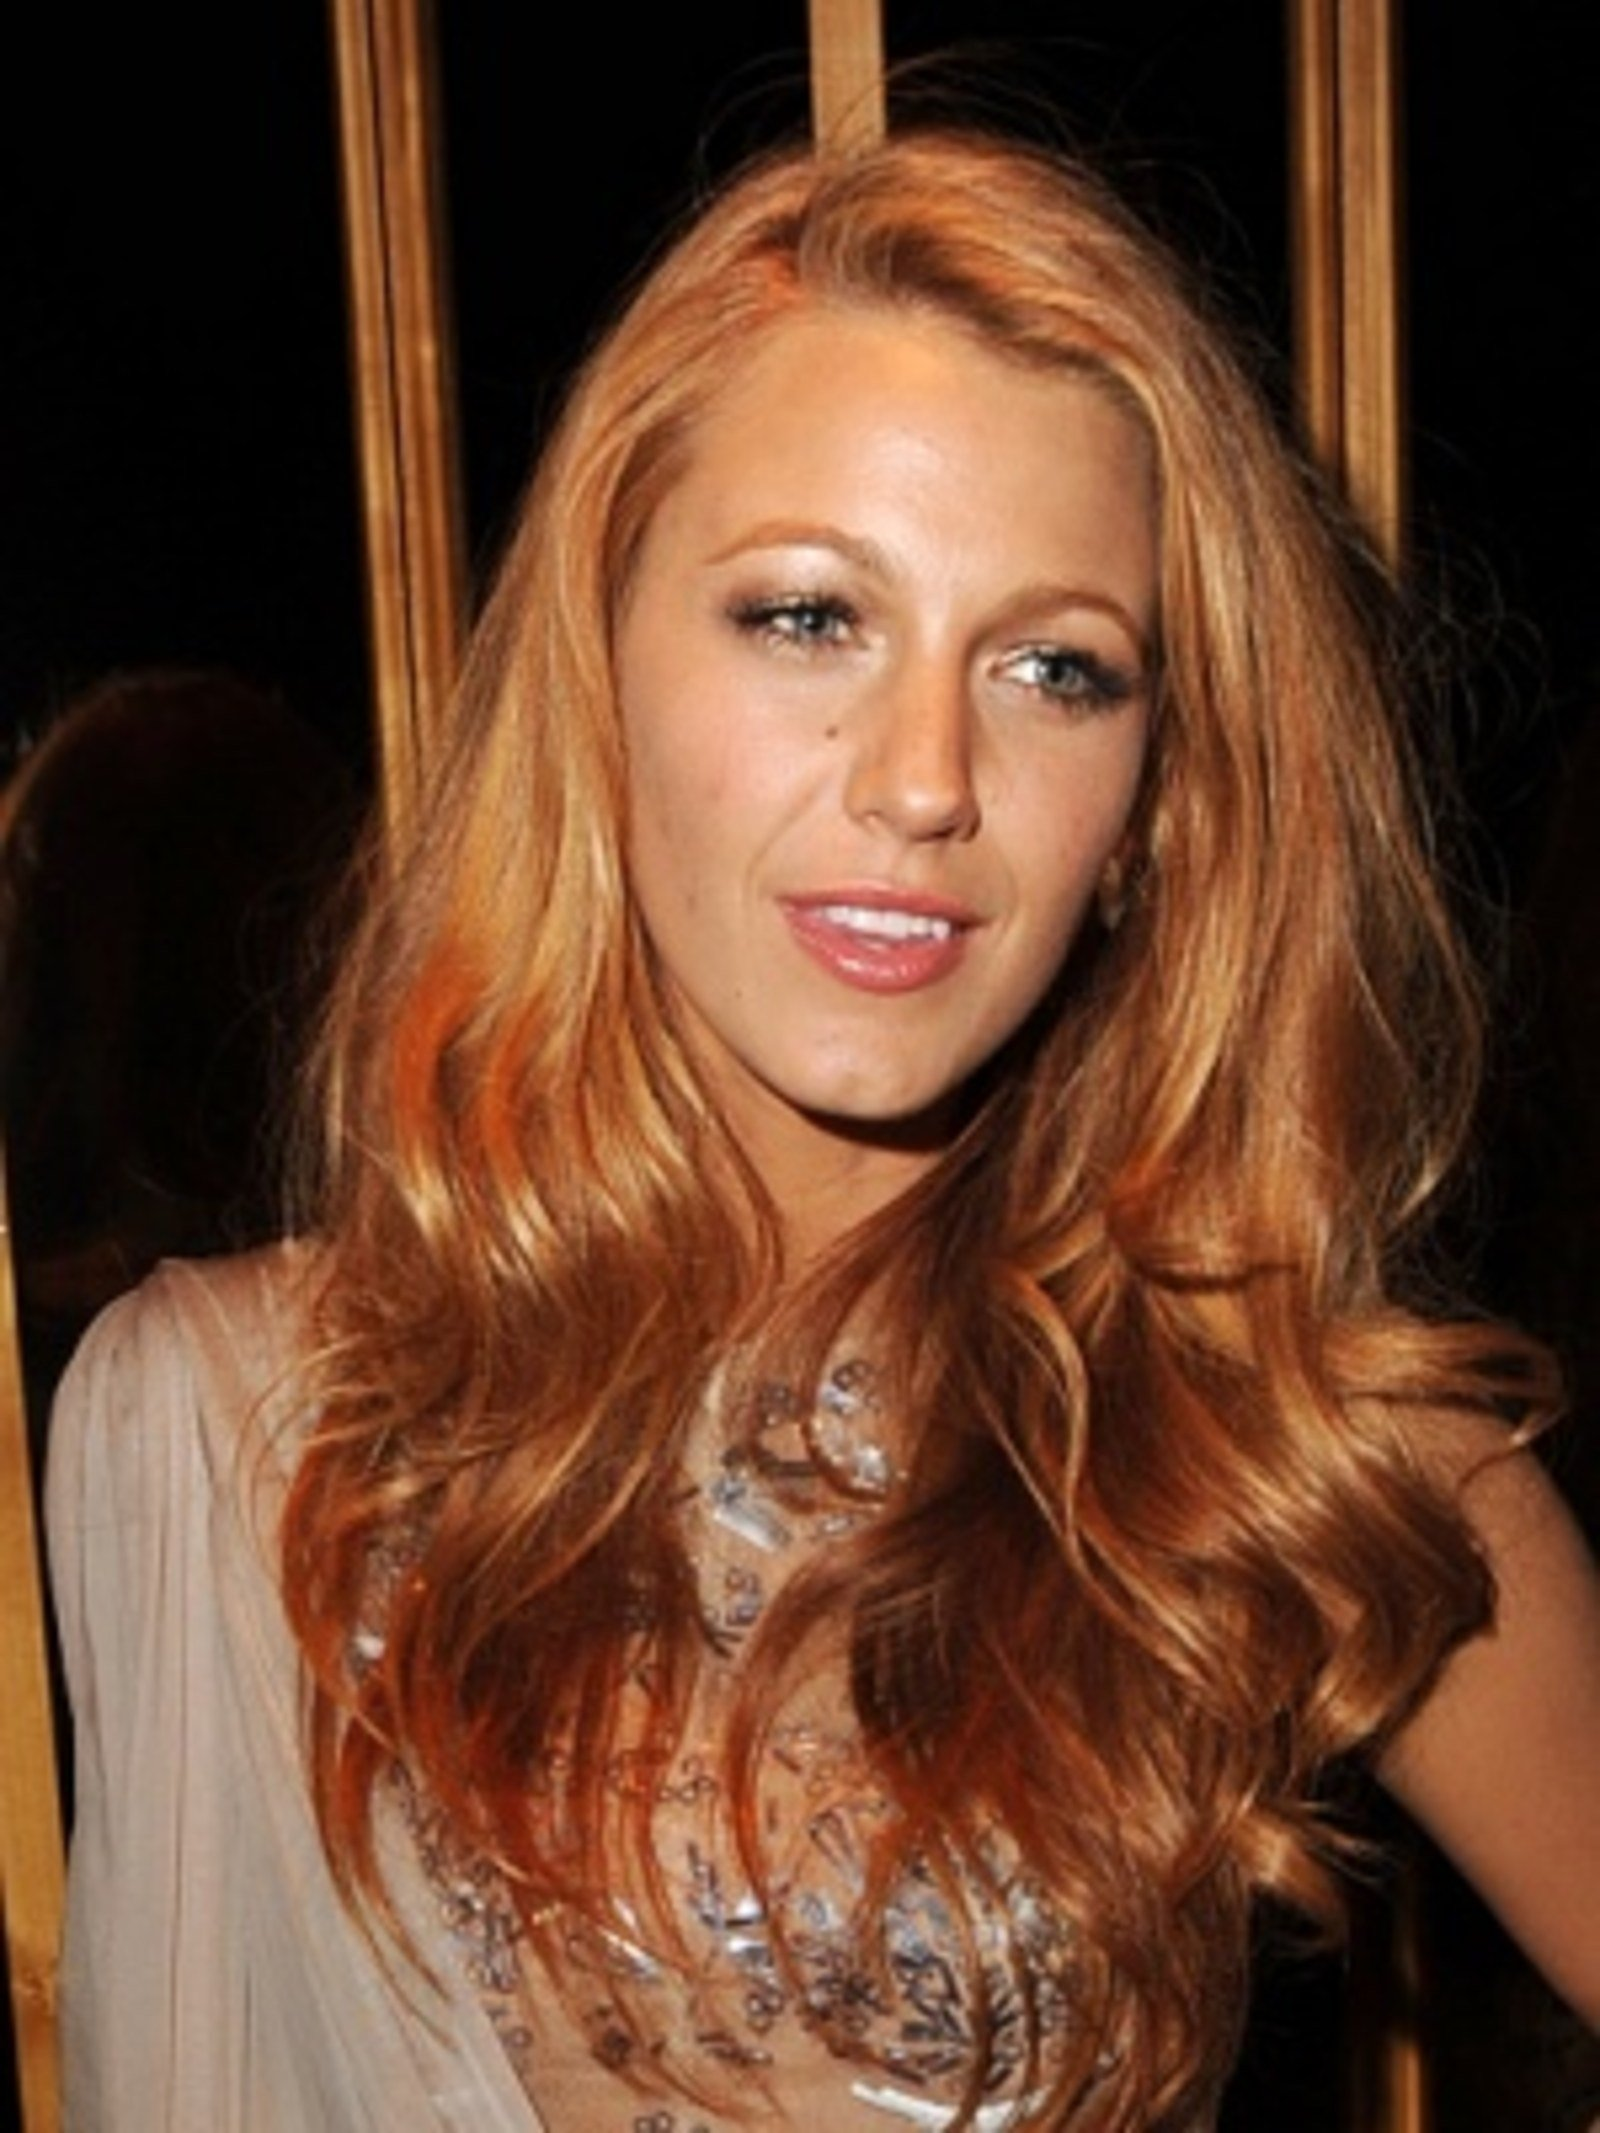 The Best Blake Lively Red Hair Color Formula Blake Lively Pictures